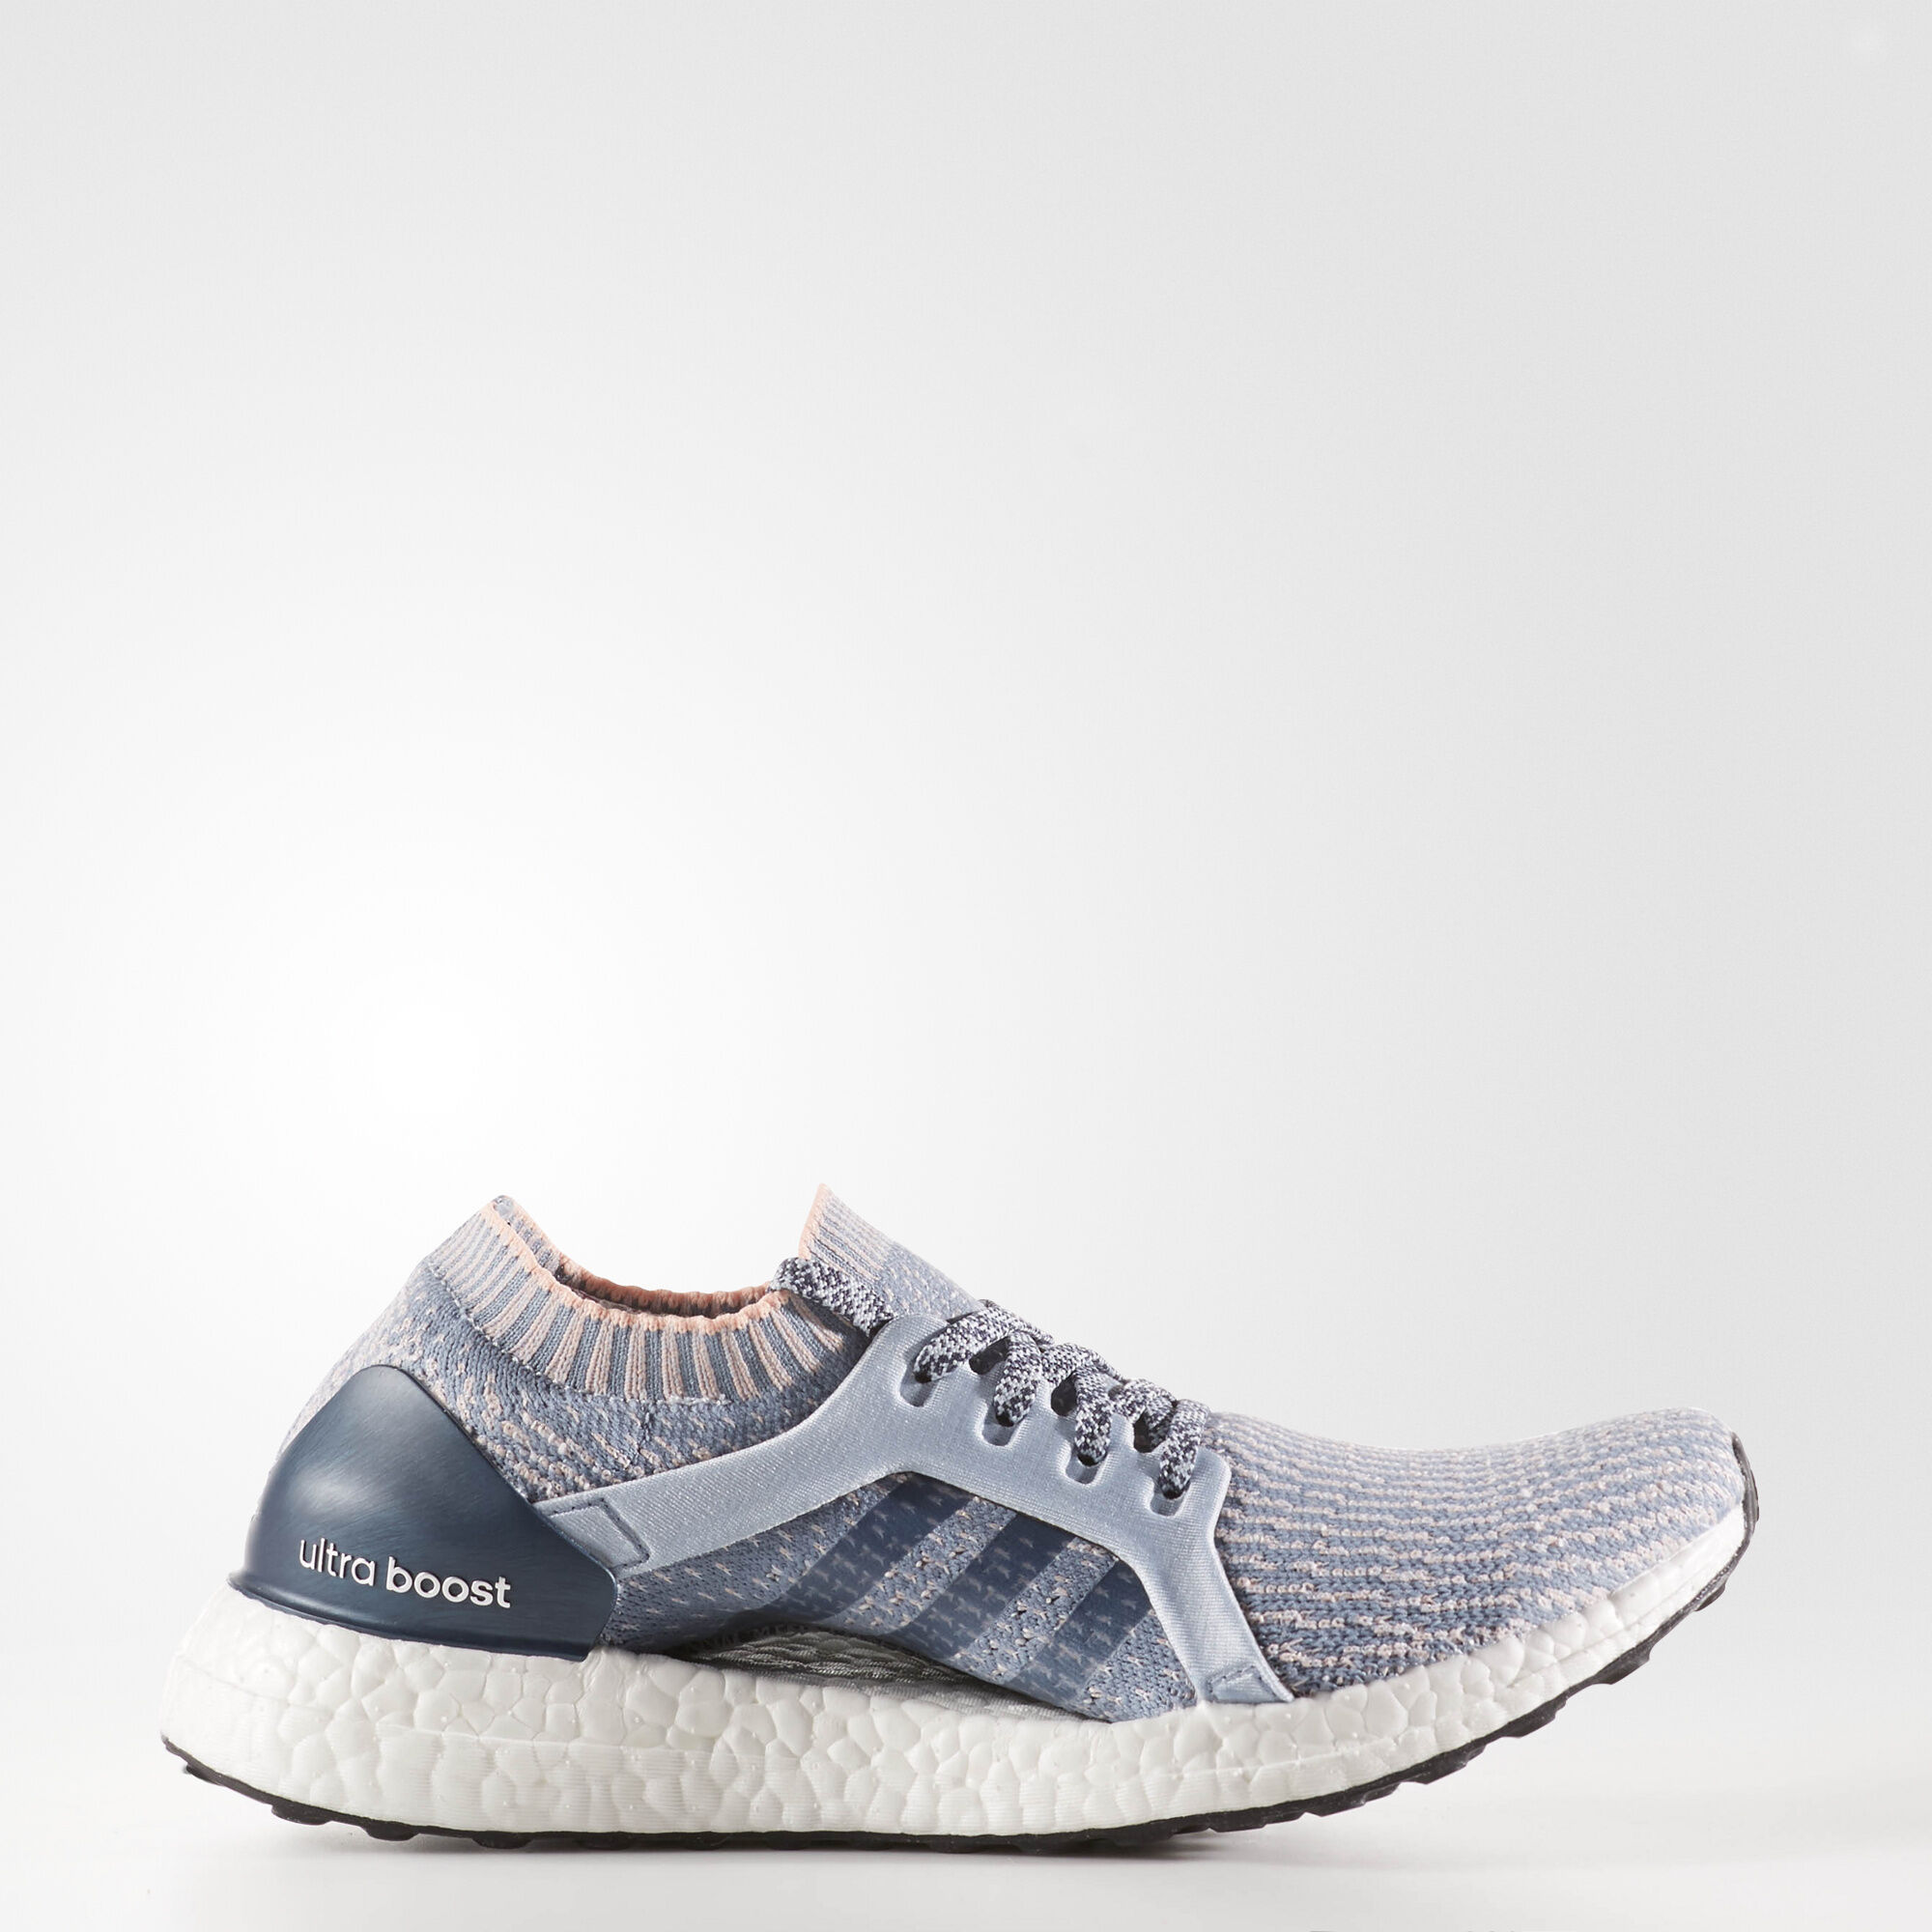 Adidas Ultra Boost Image